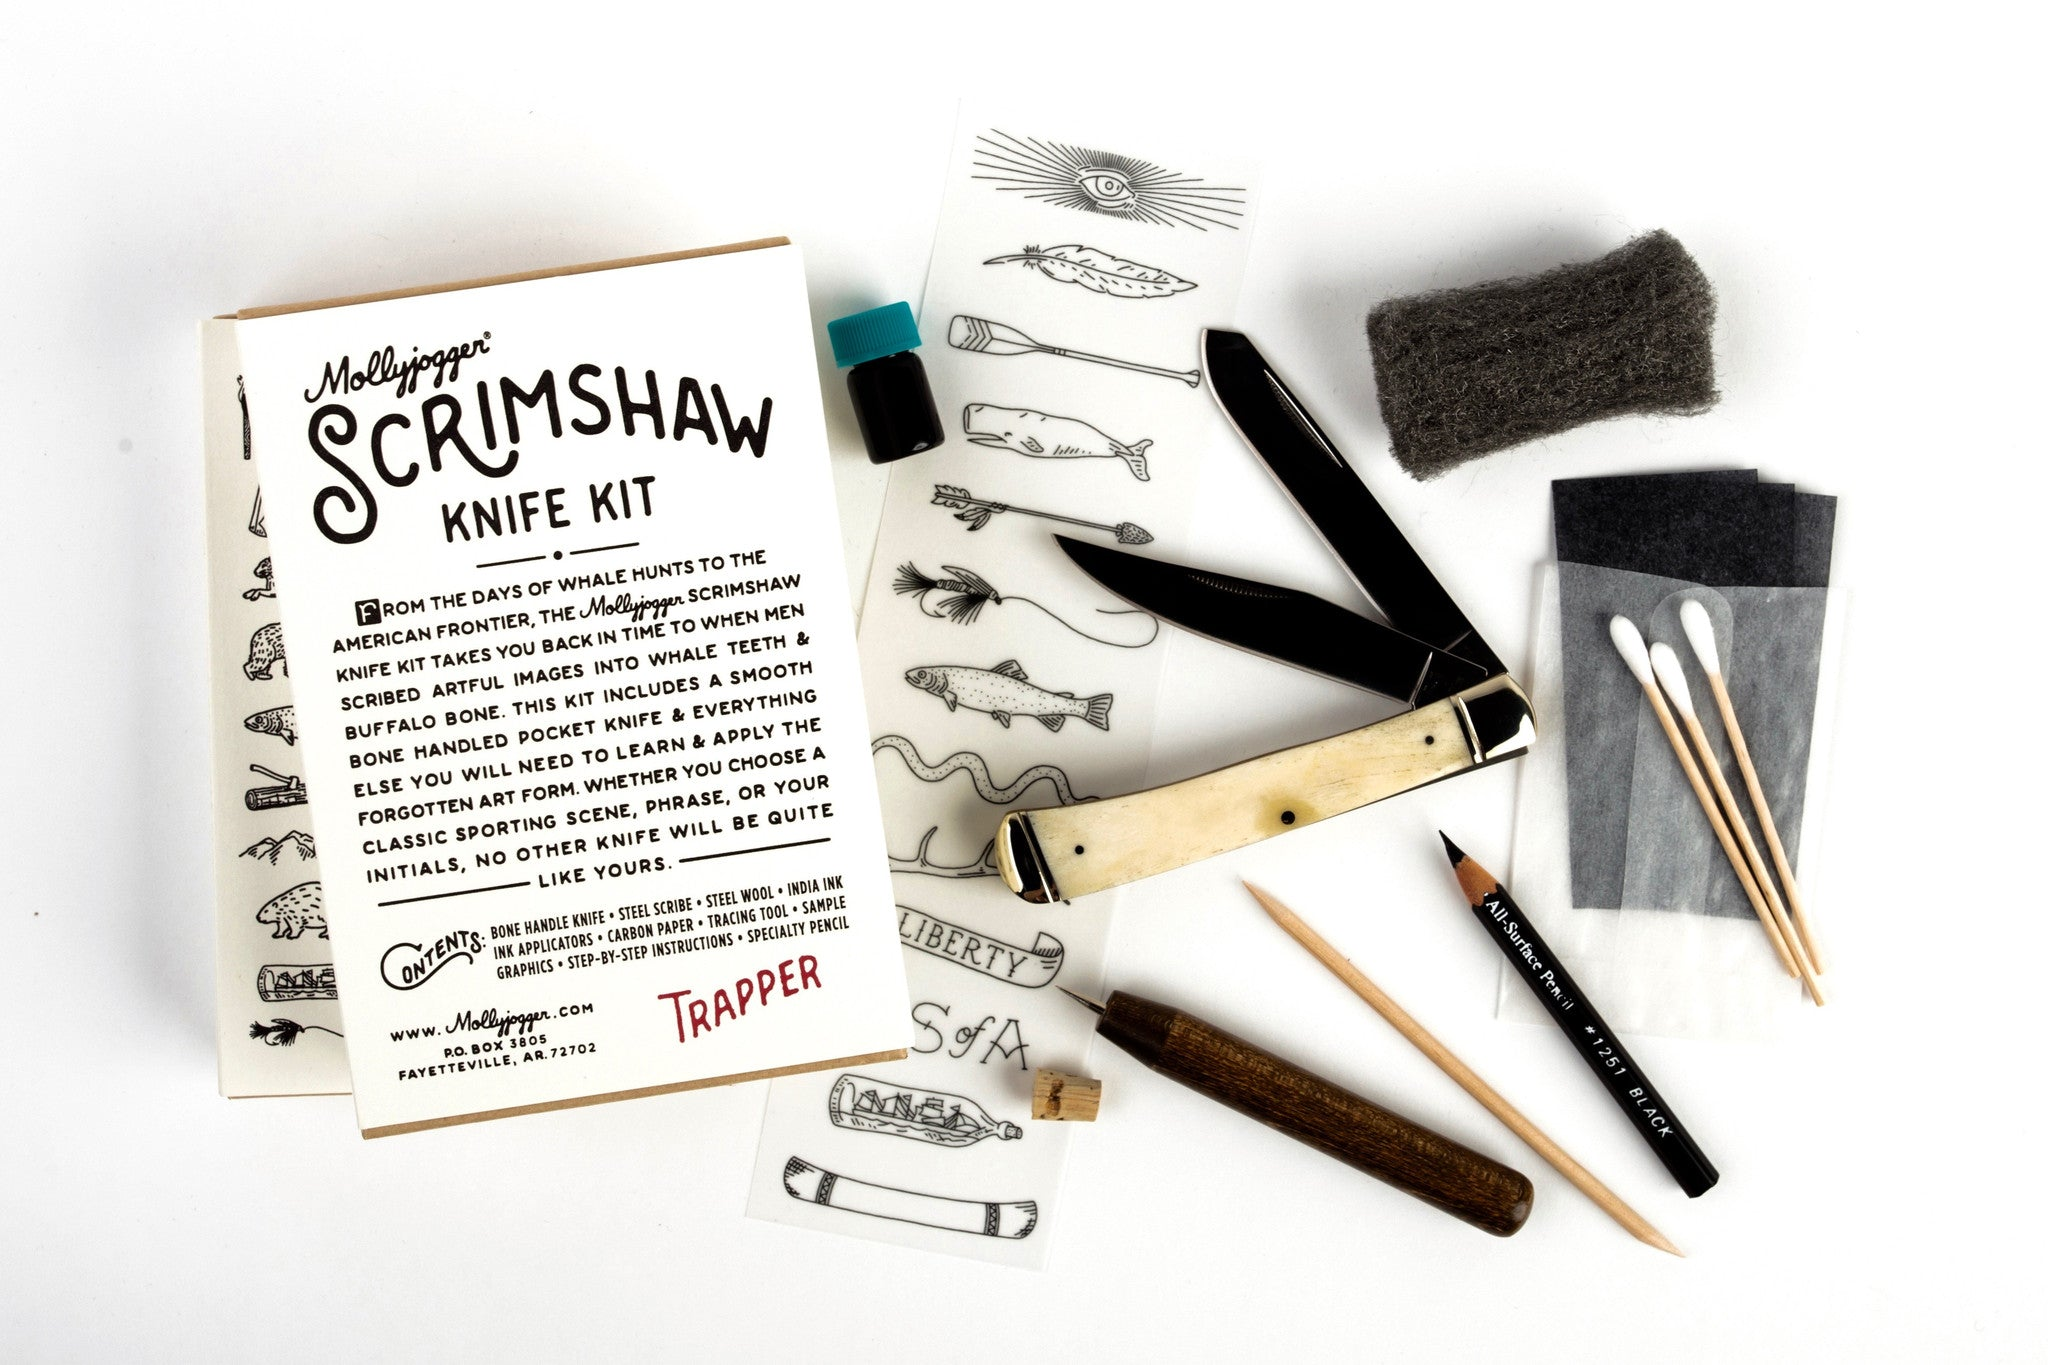 Scrimshaw pocket knife diy kit mollyjogger scrimshaw lockback trapper knife mollyjogger kit diy solutioingenieria Choice Image